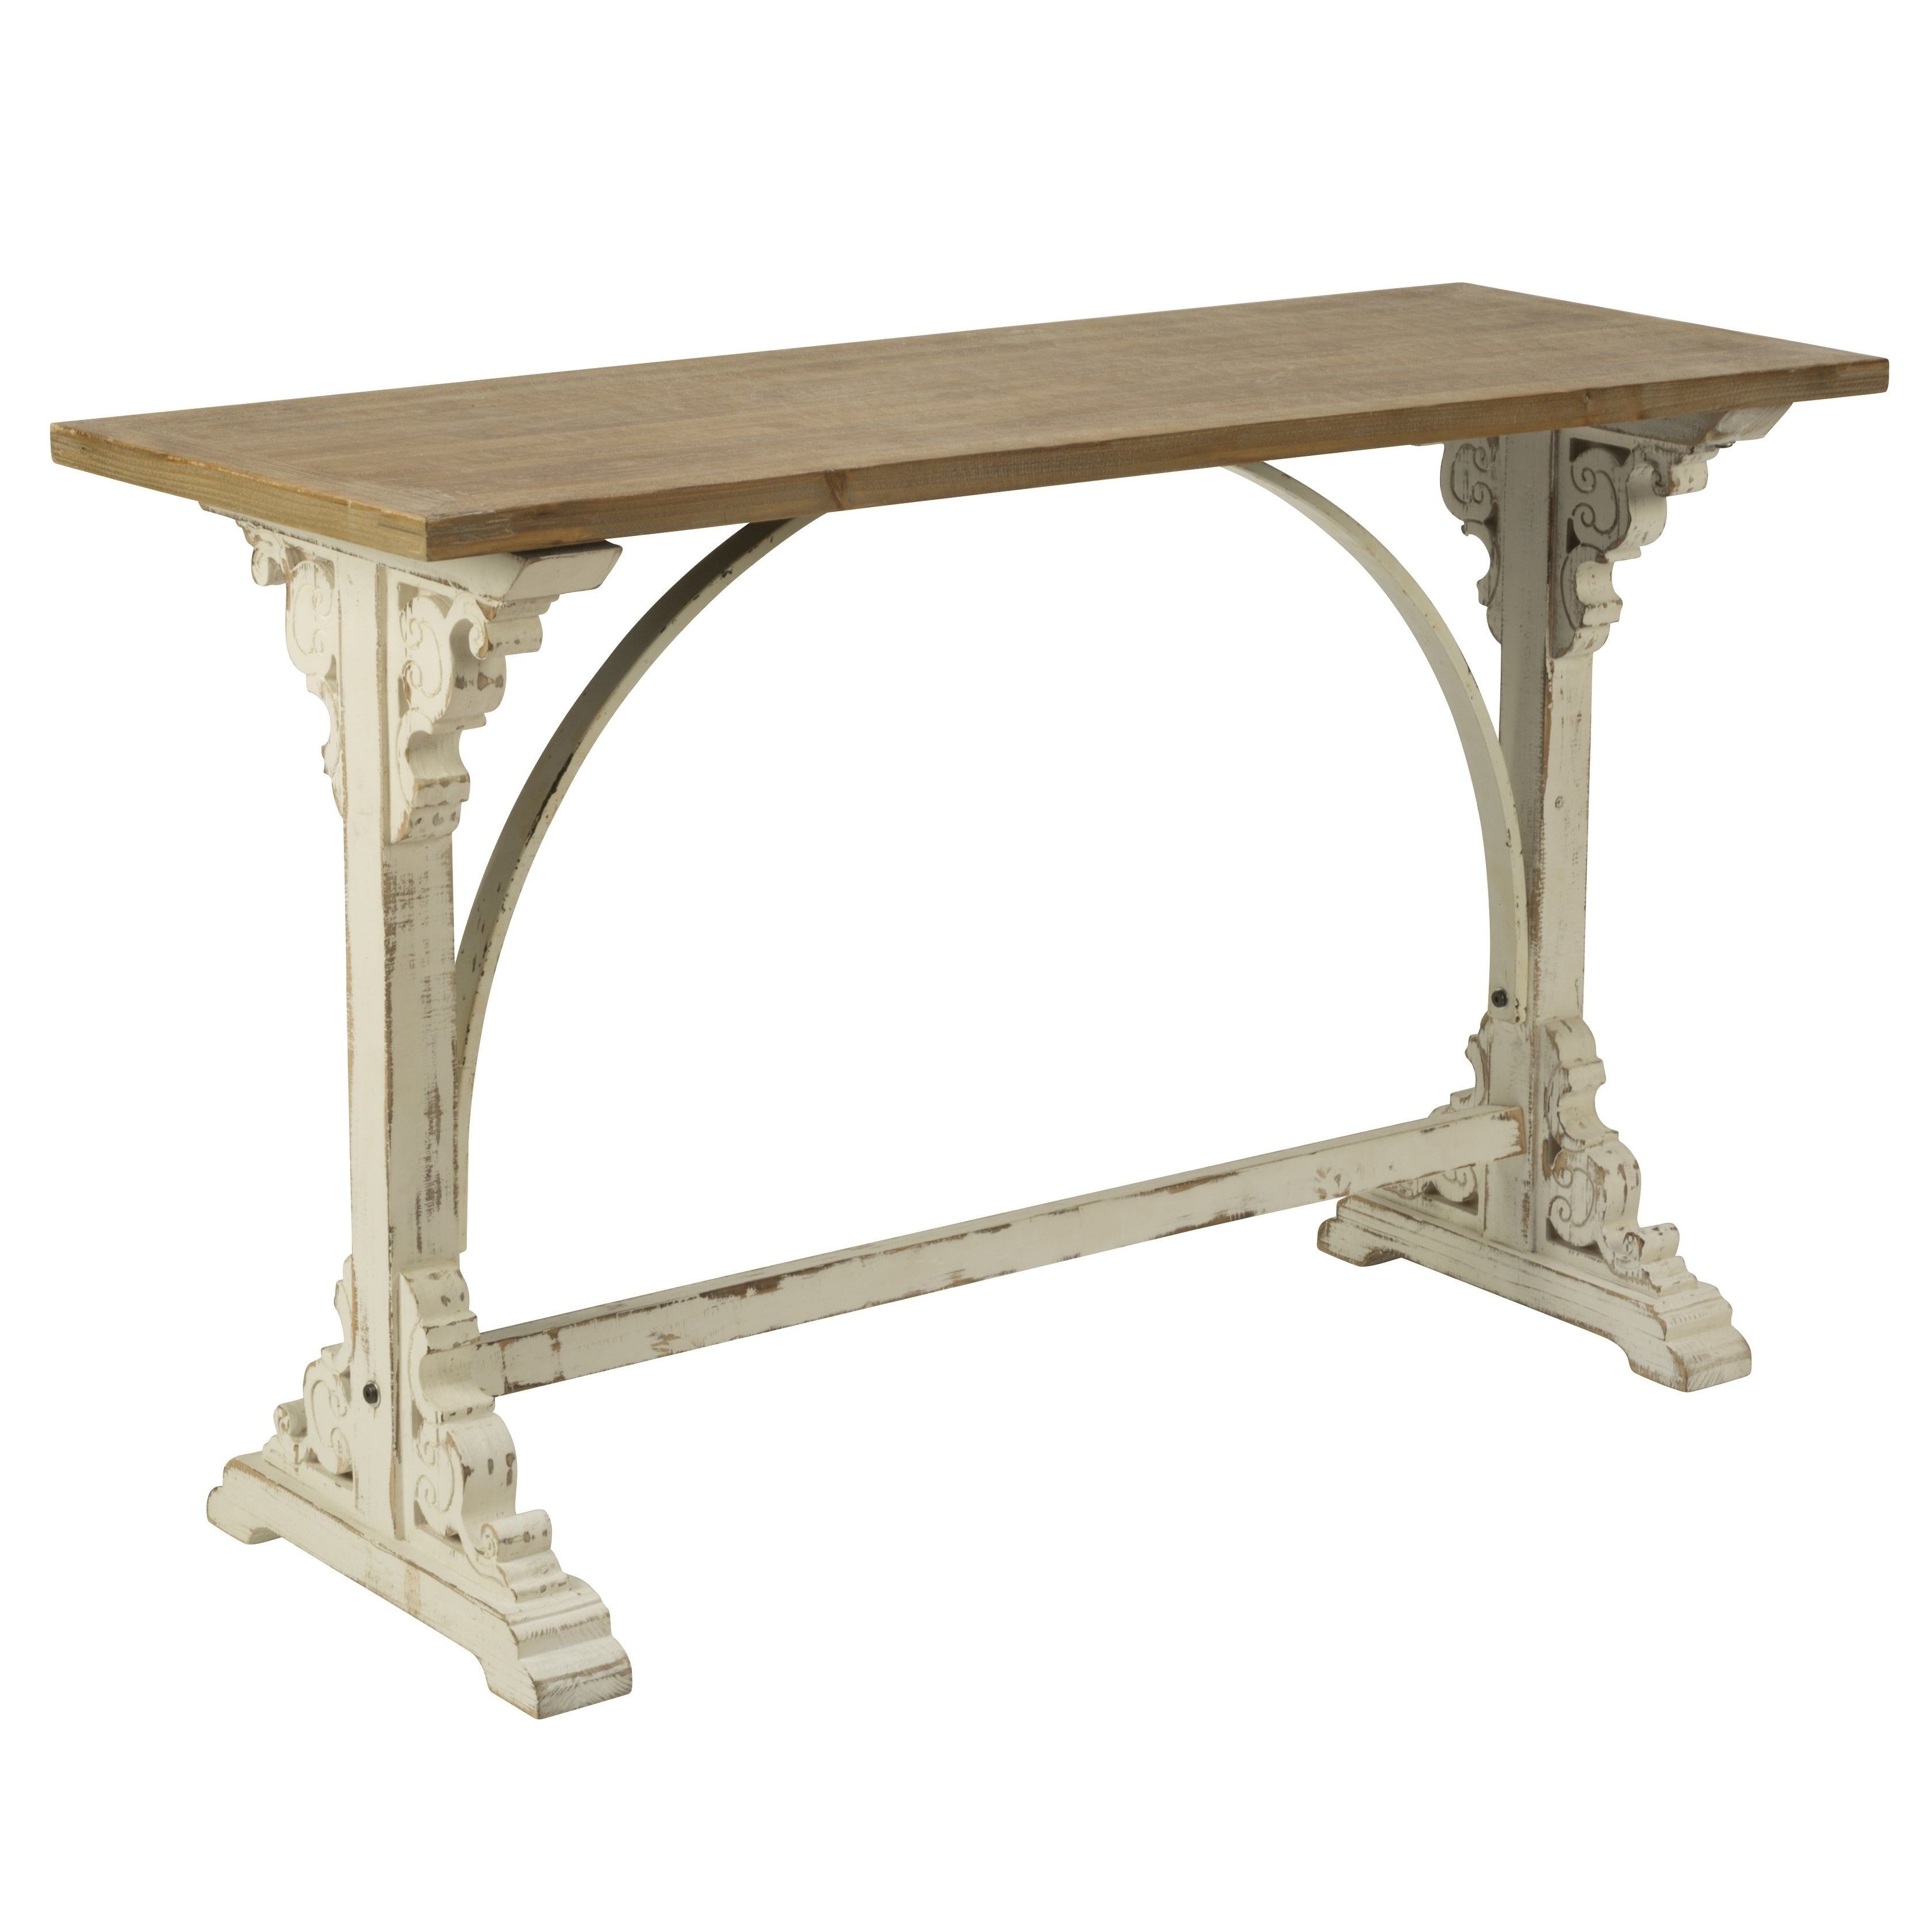 Super Wood Console Style Table Gmtry Best Dining Table And Chair Ideas Images Gmtryco